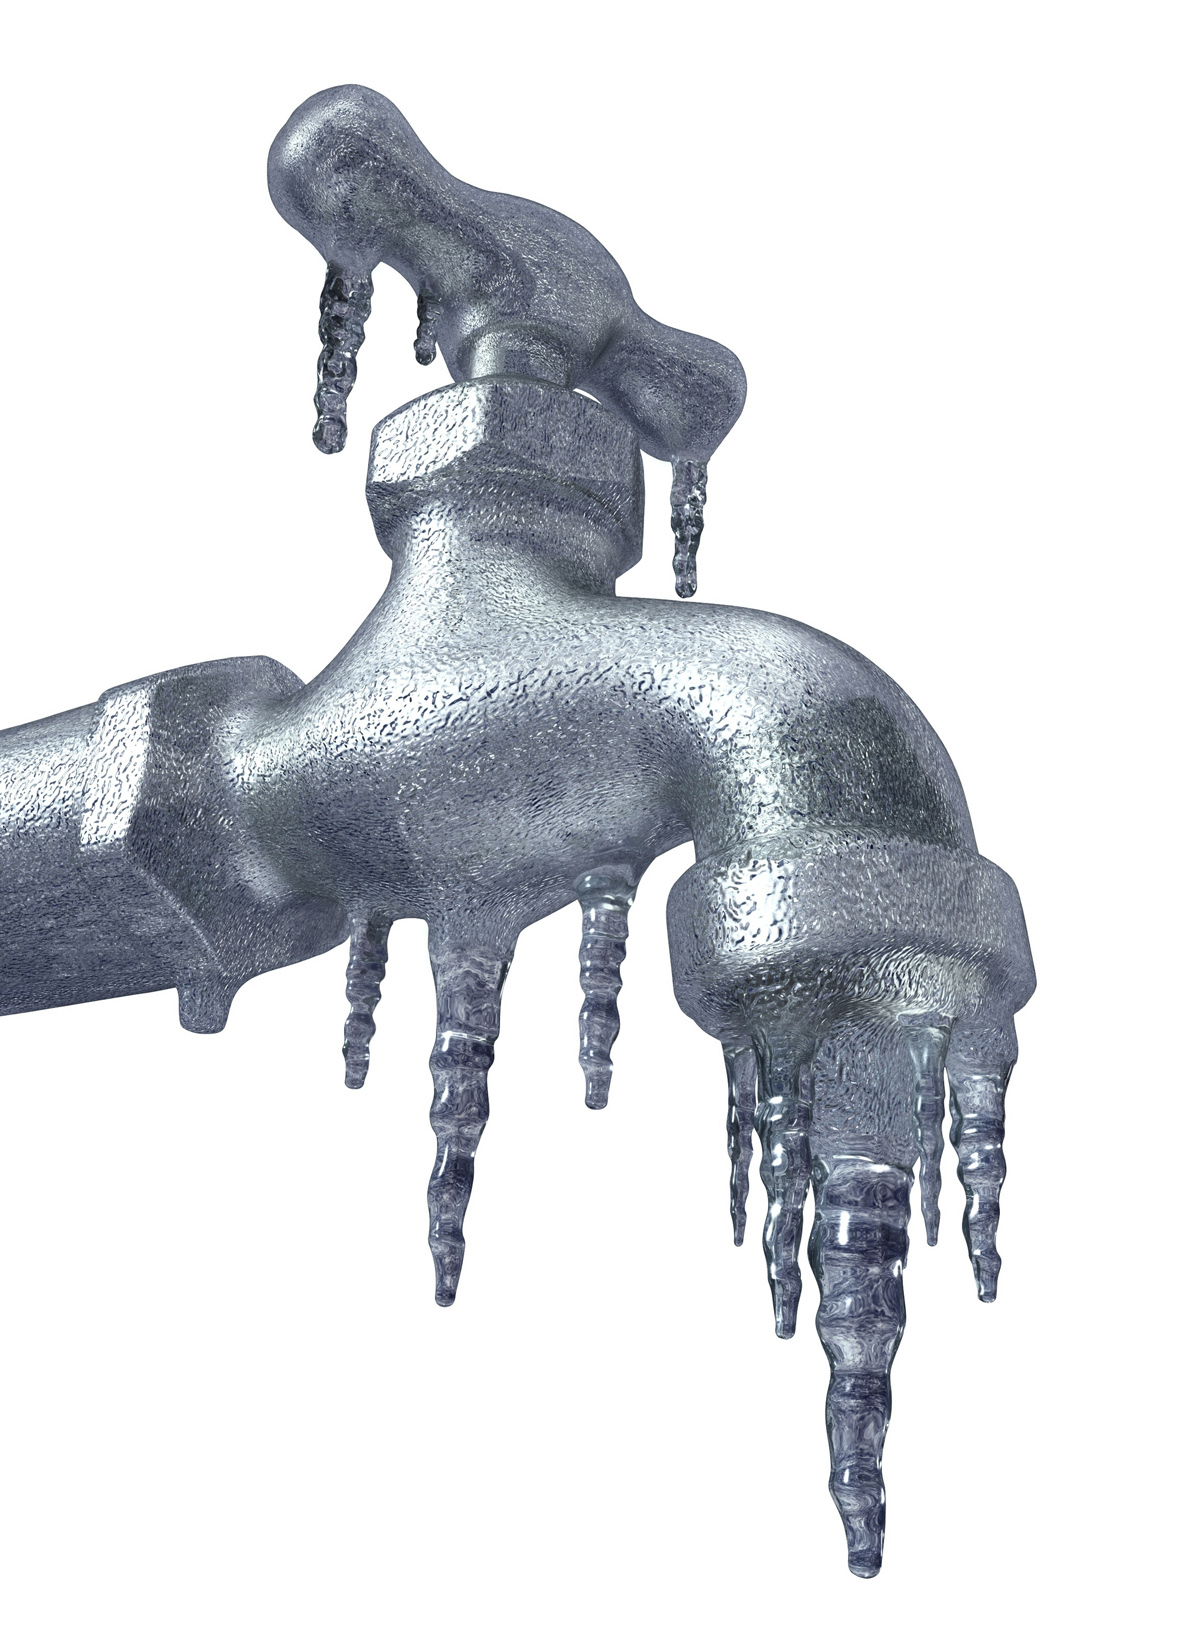 Plumbing Tips for Winter: Winterizing and the Thermostat War